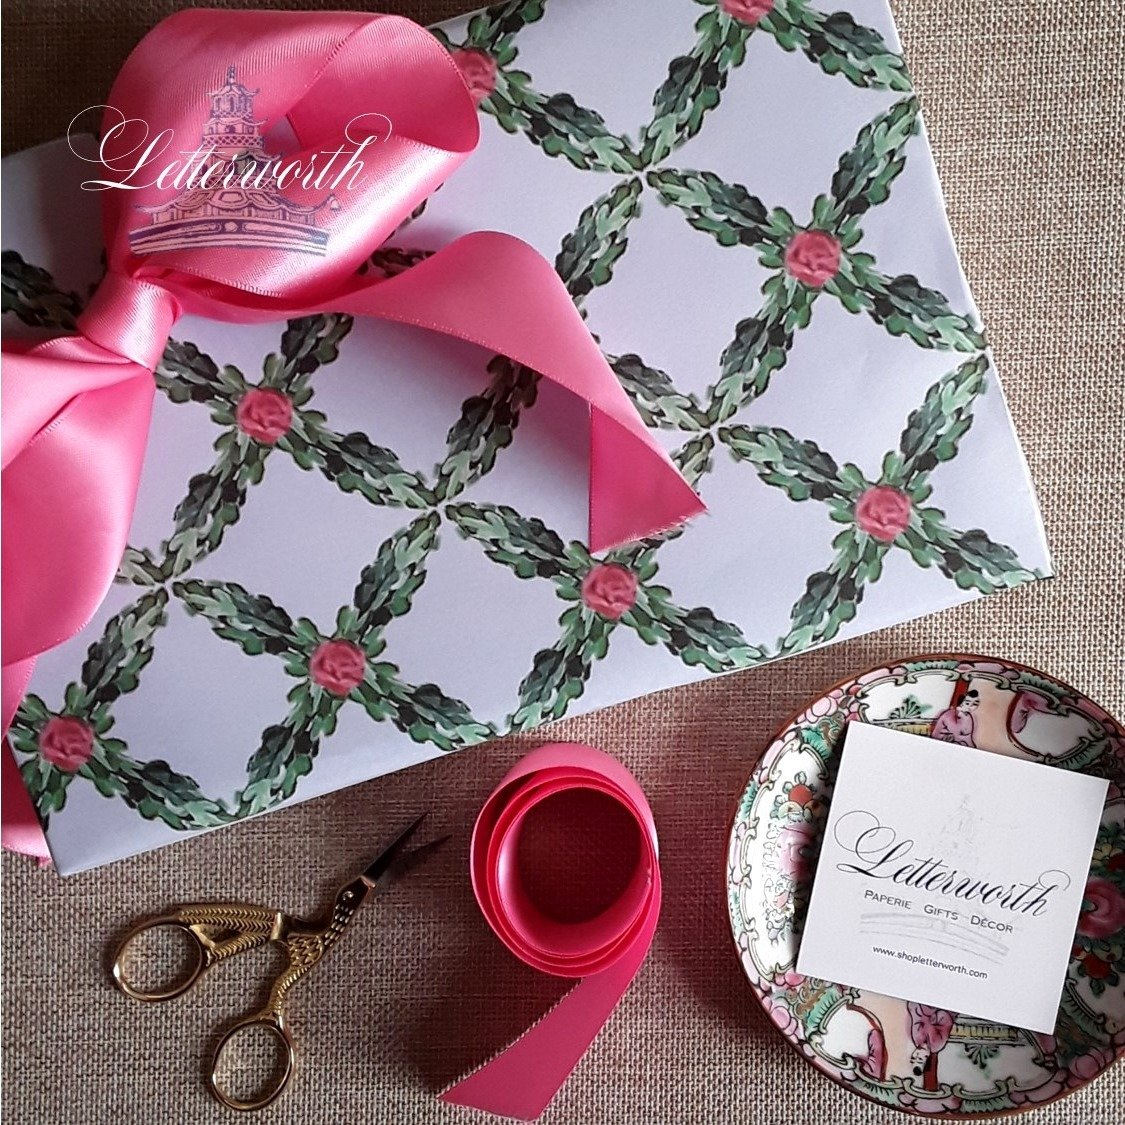 Rose Garden Trellis Gift Wrapping Paper by Letterworth